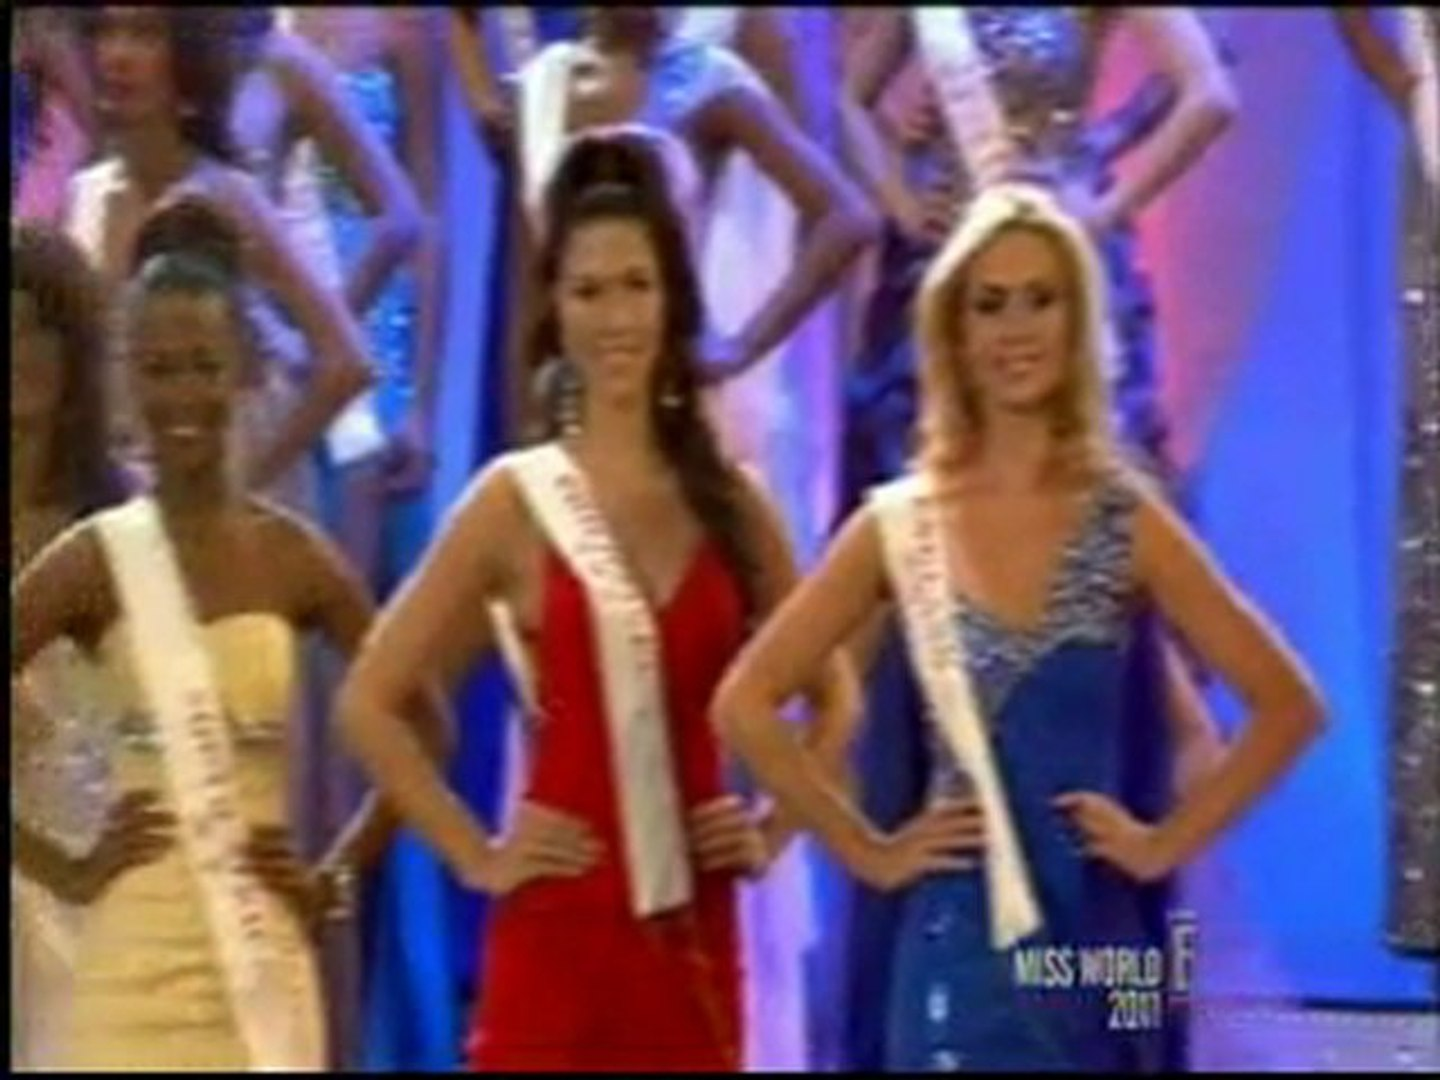 Miss world 2011 Live From London 6th November 2011 Pt7